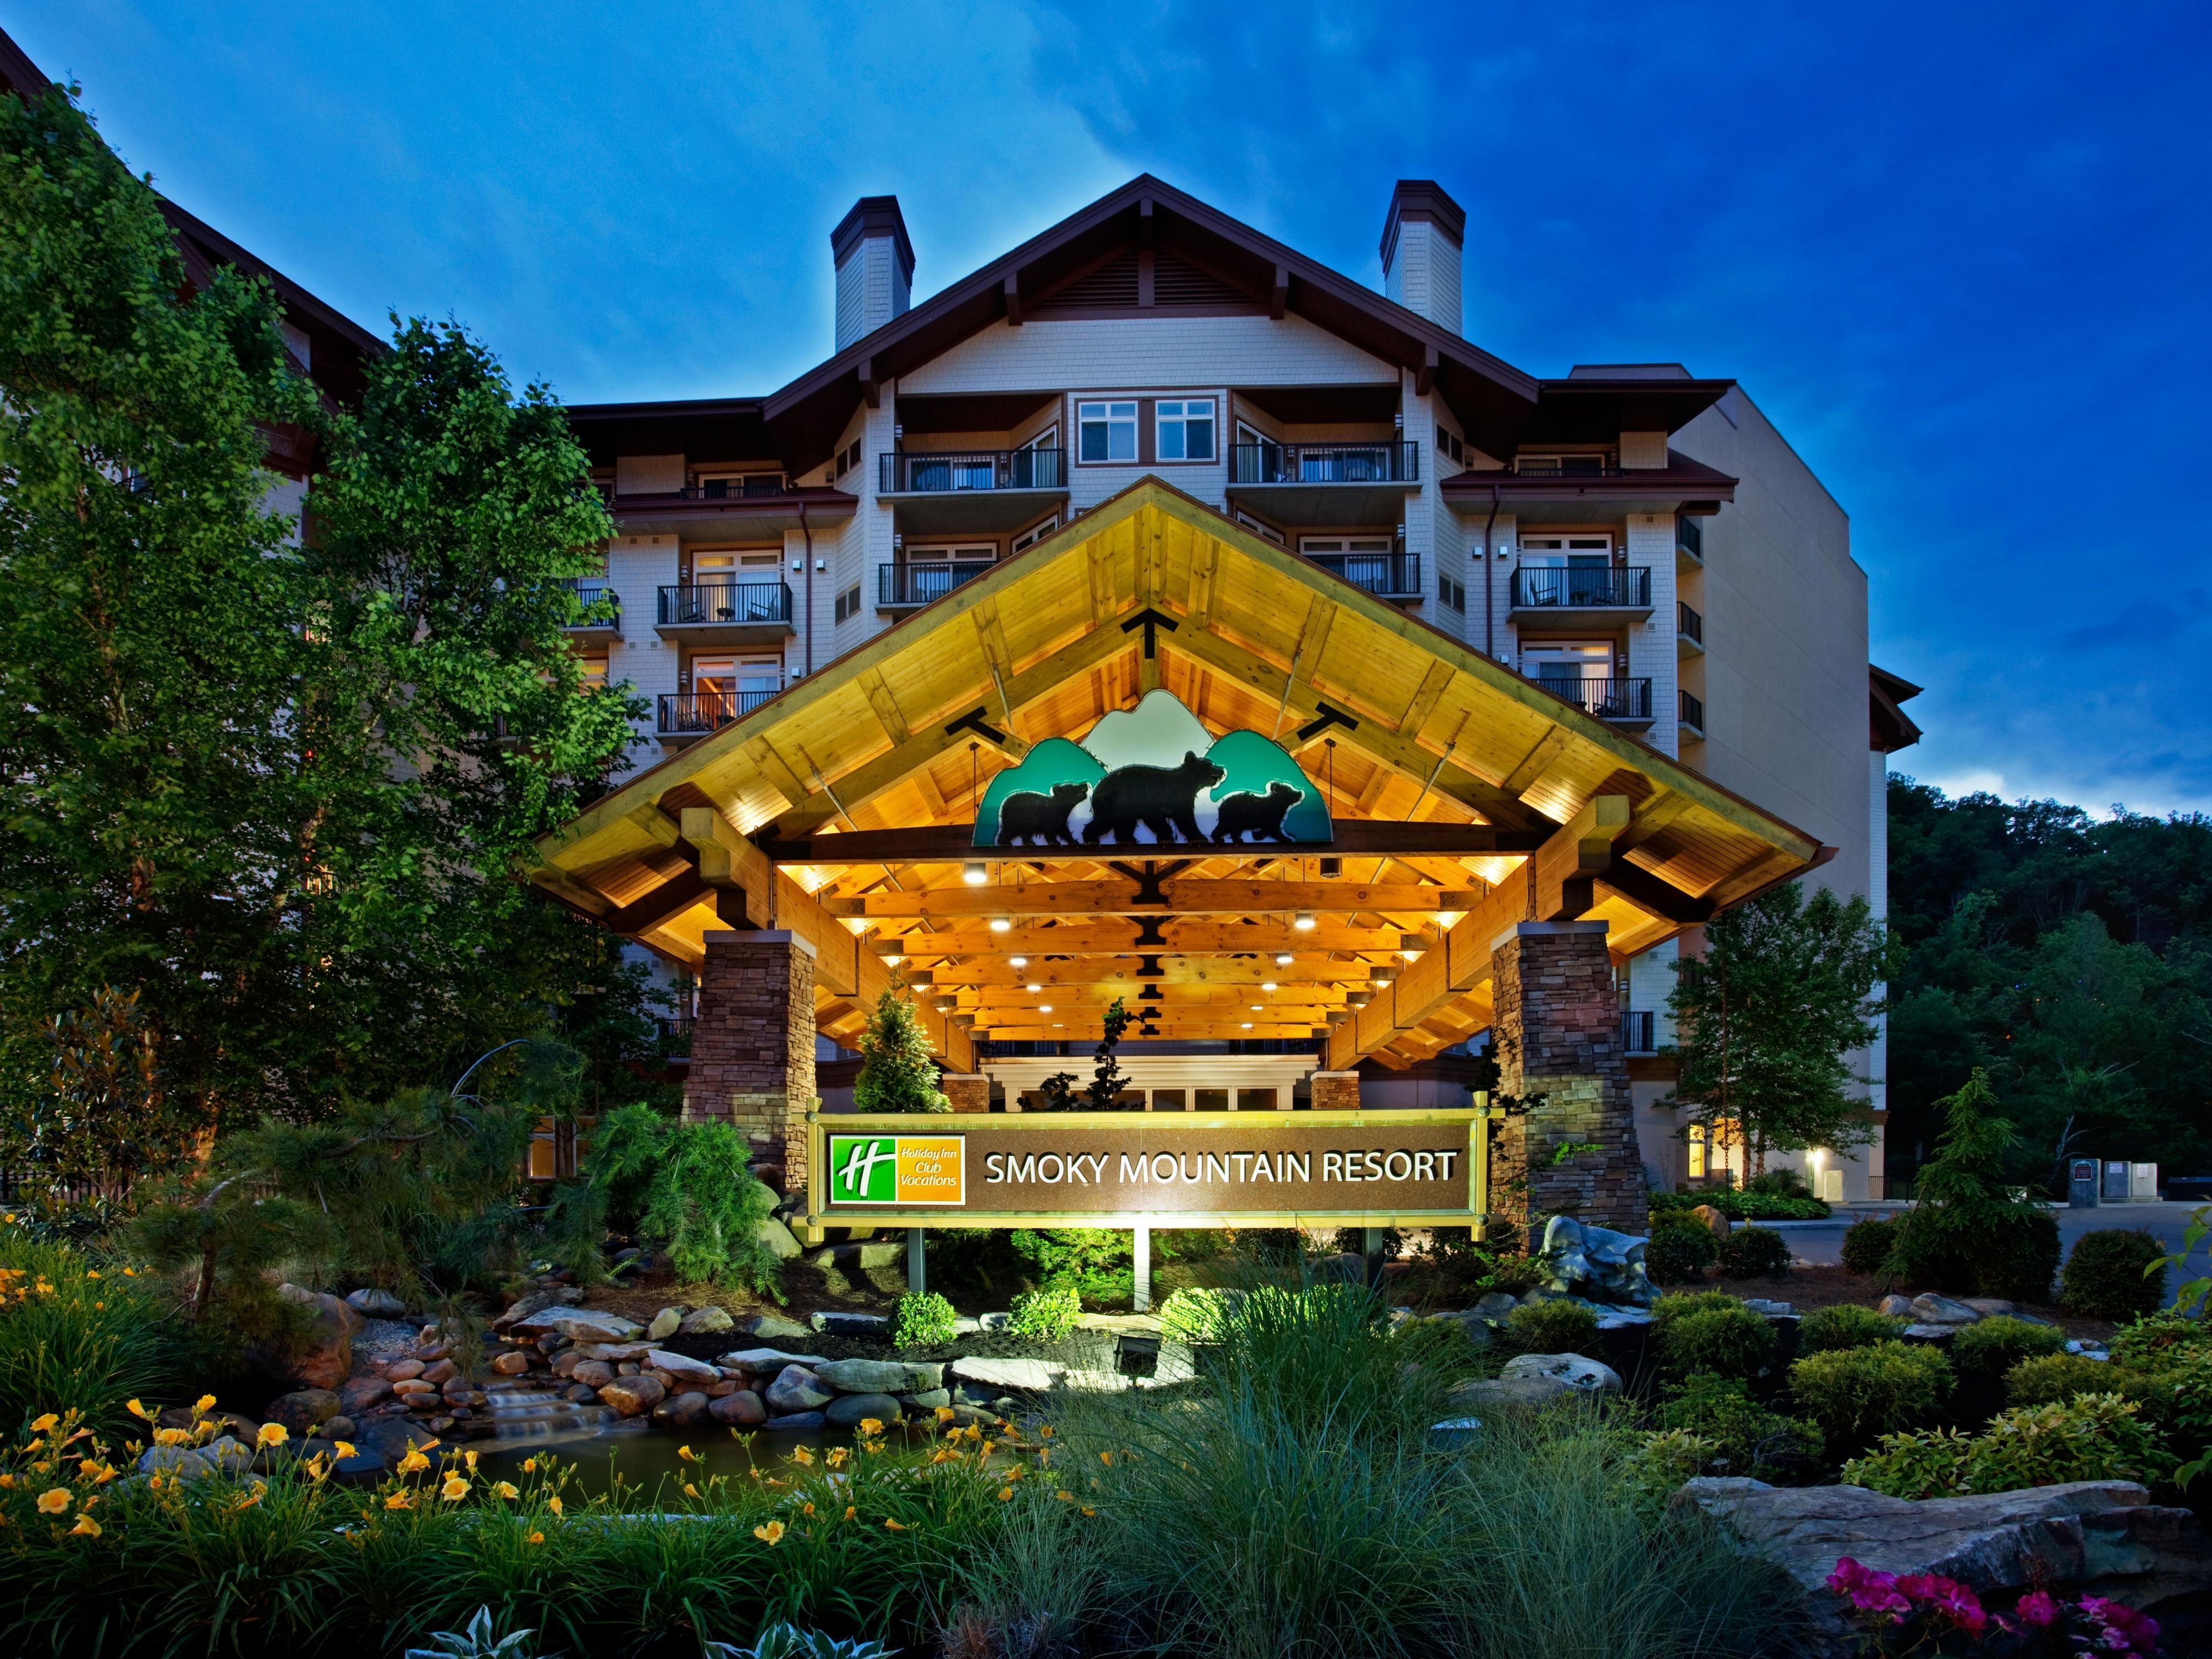 World Hotel Finder Holiday Inn Club Vacations Gatlinburg Smoky Mountain Great Smokey Mountains Deals Pinterest And Vacation